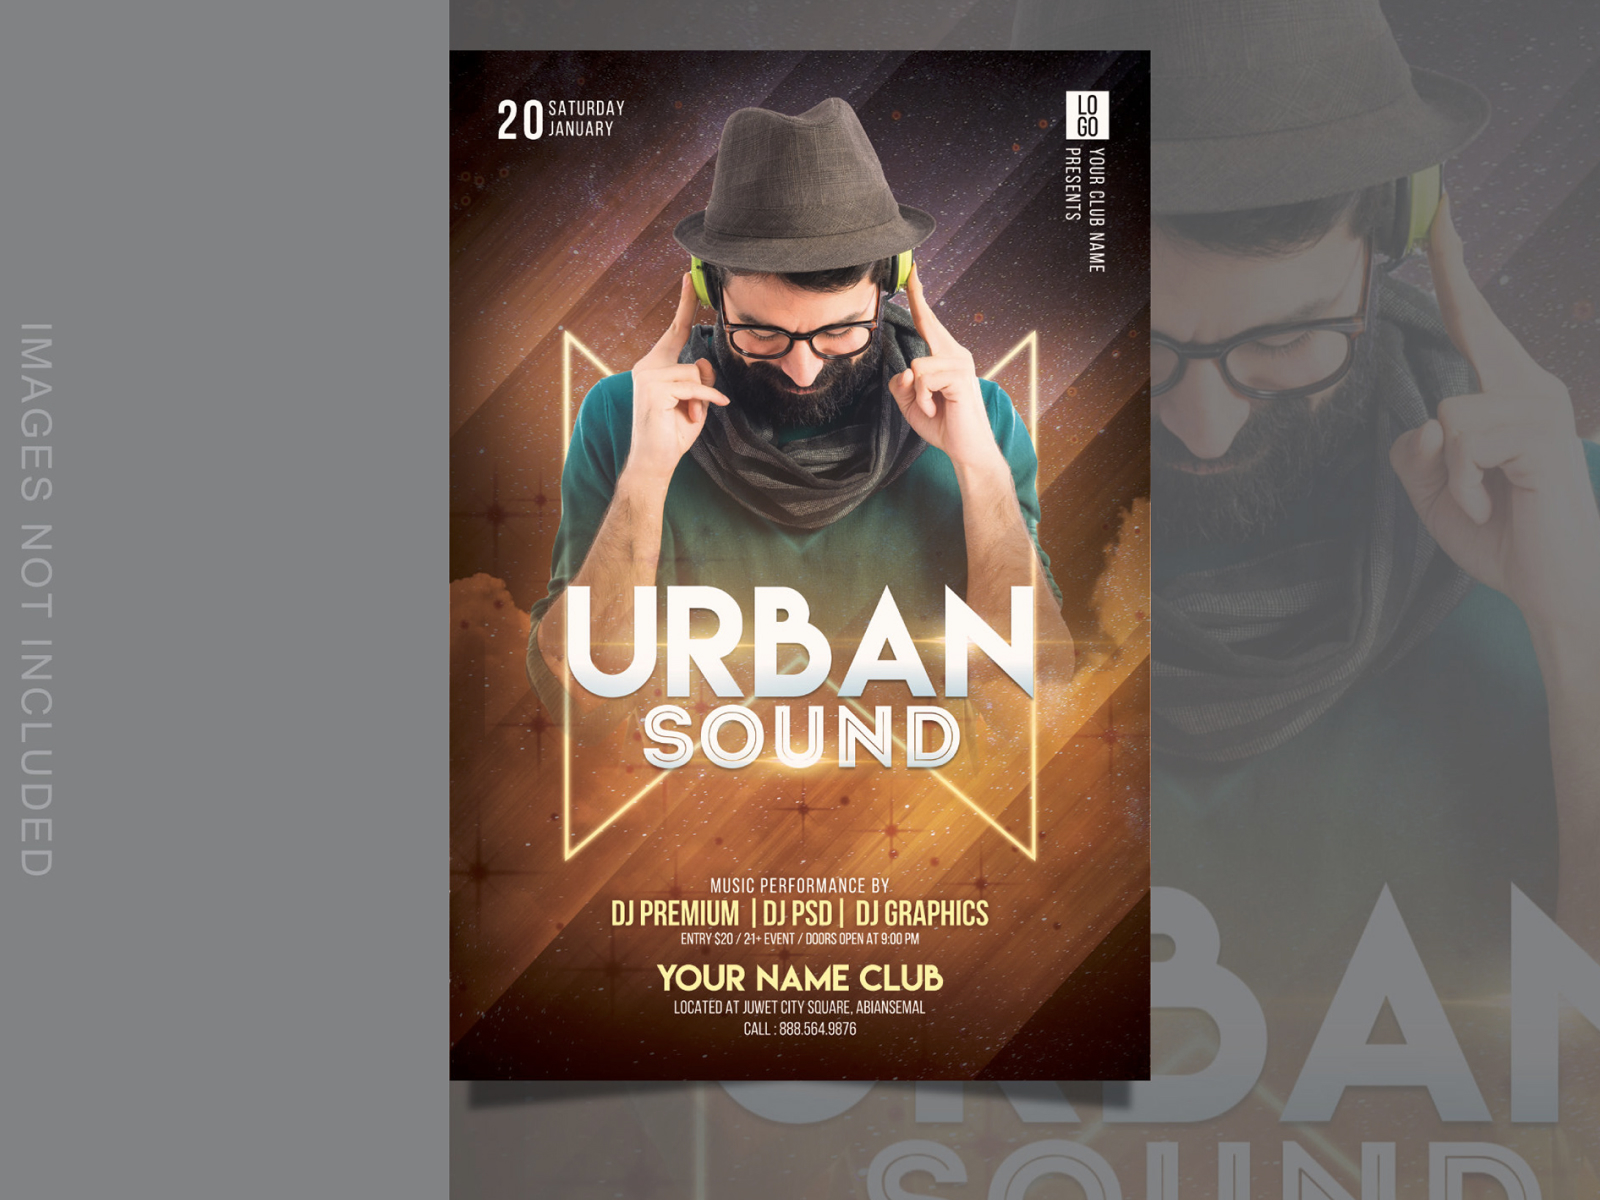 Urban Sound Party Flyer cover image